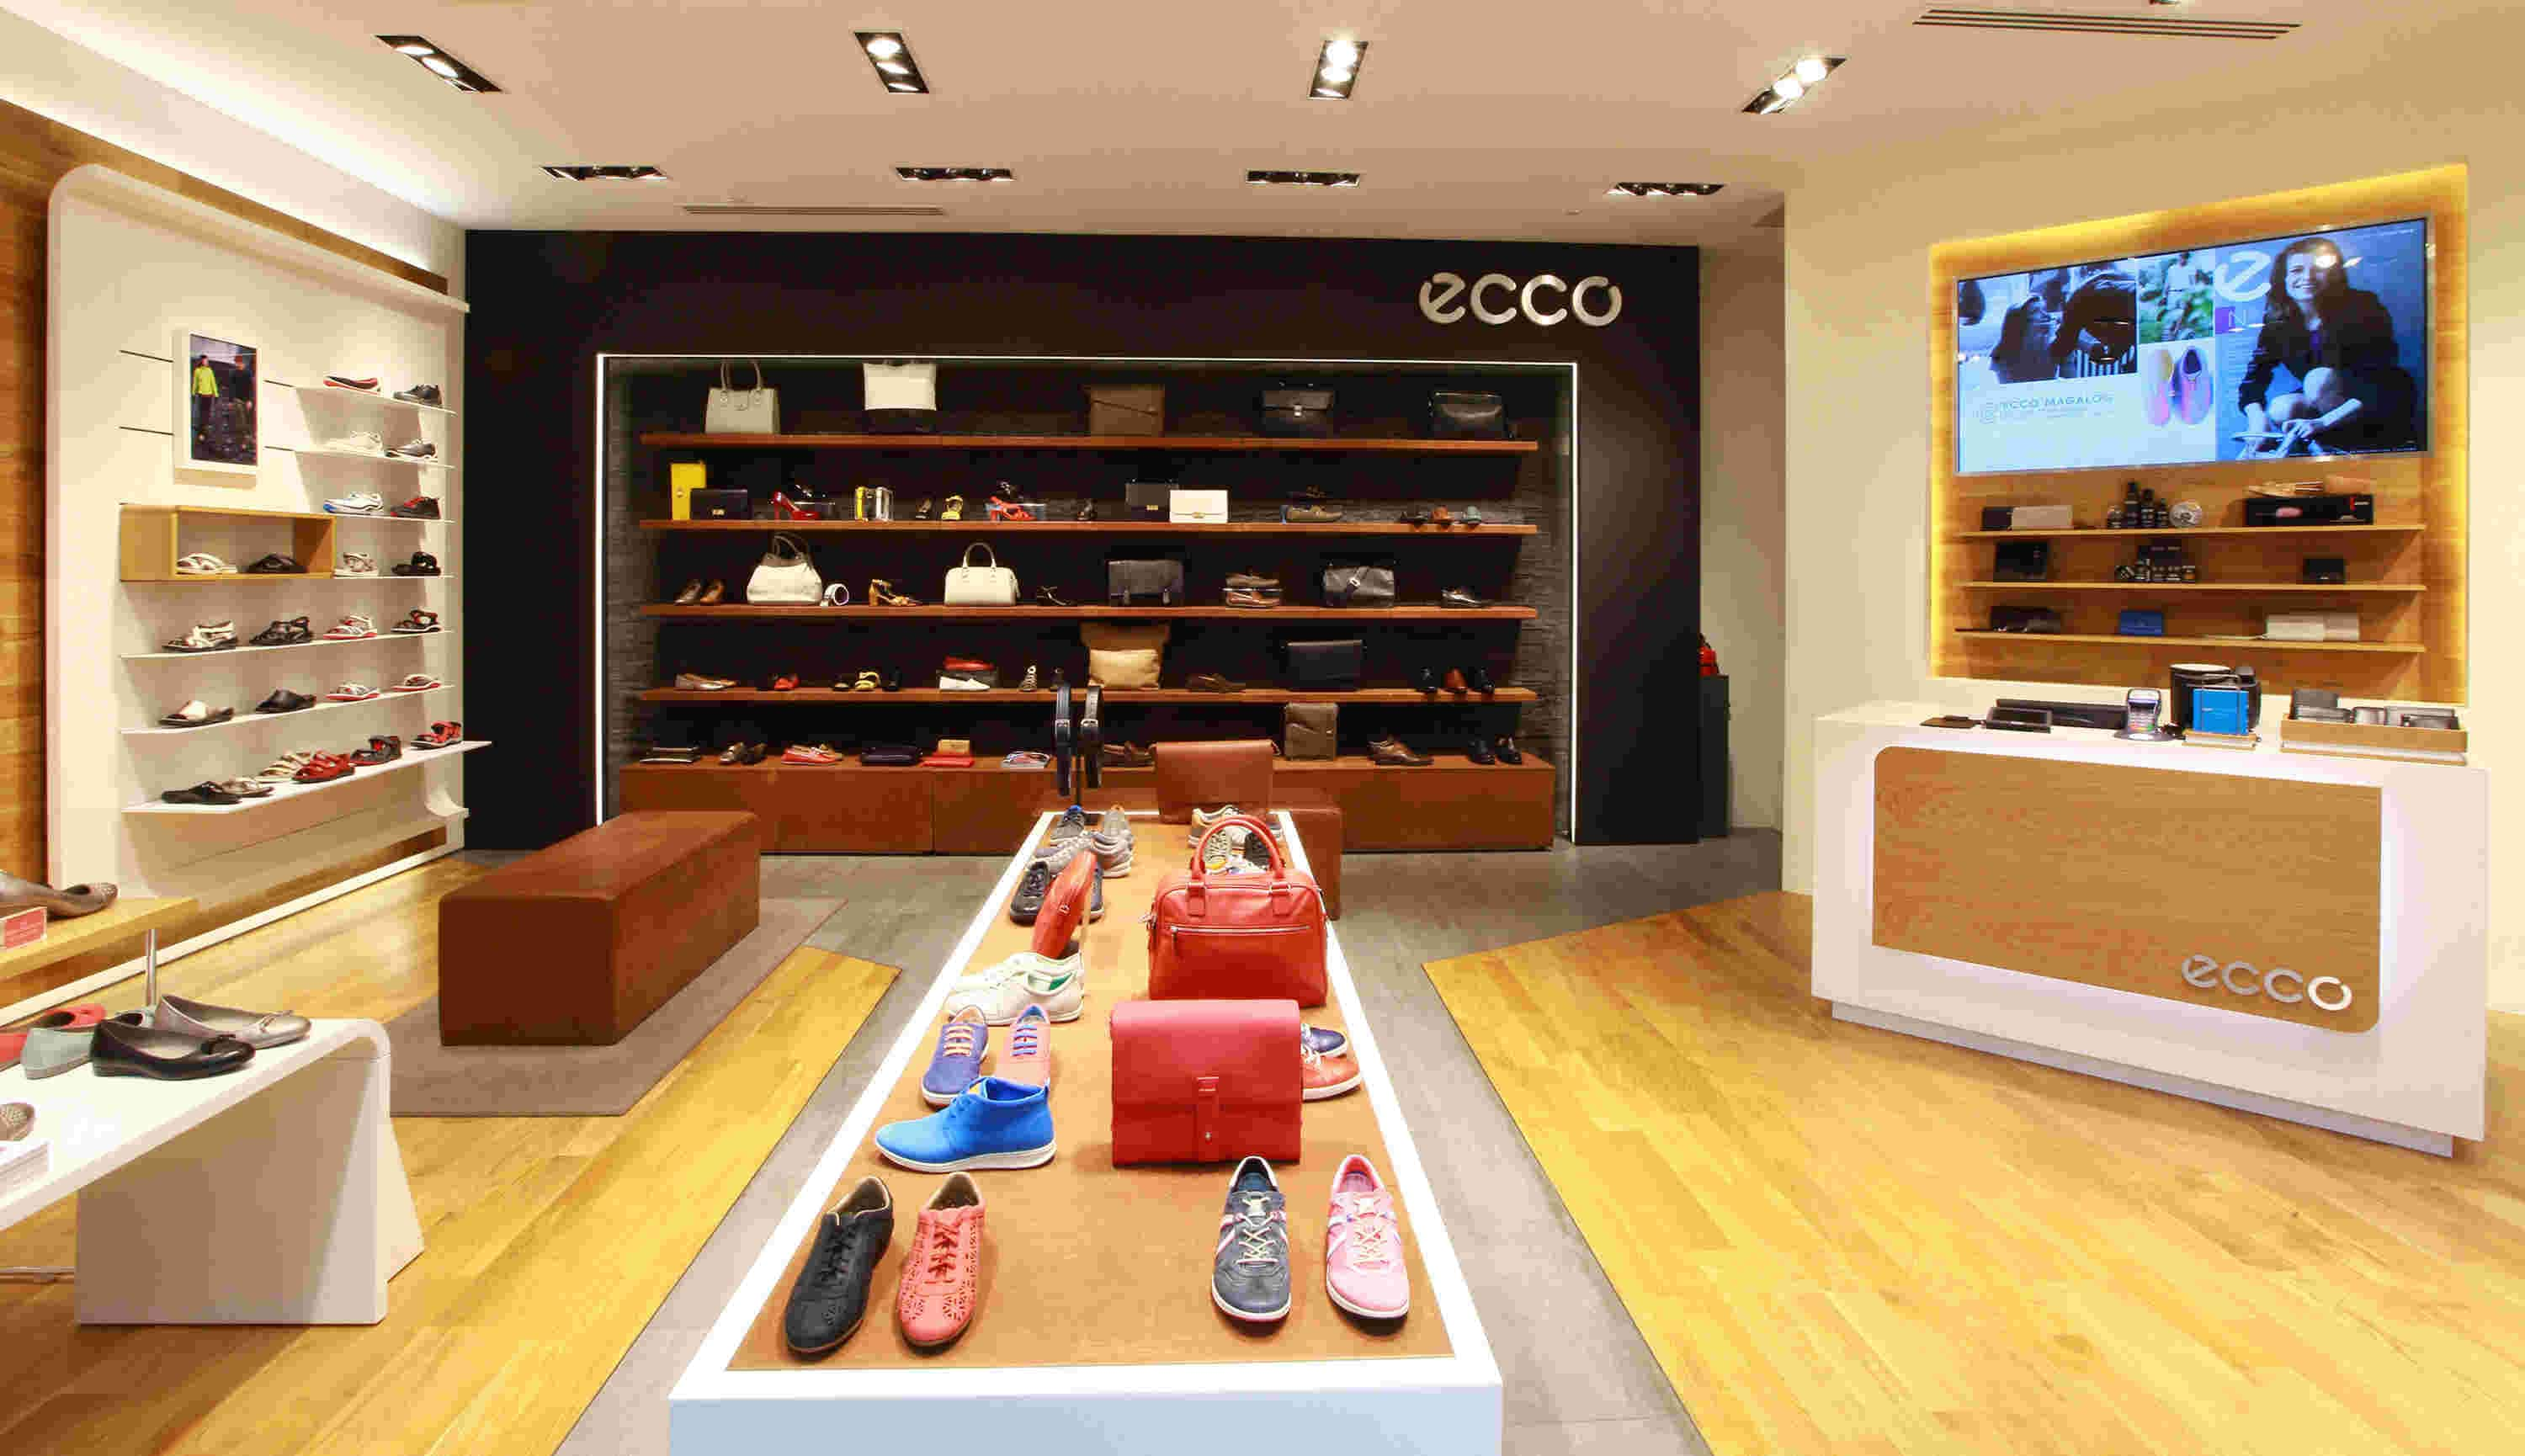 ECCO store in Marina Bay Sands